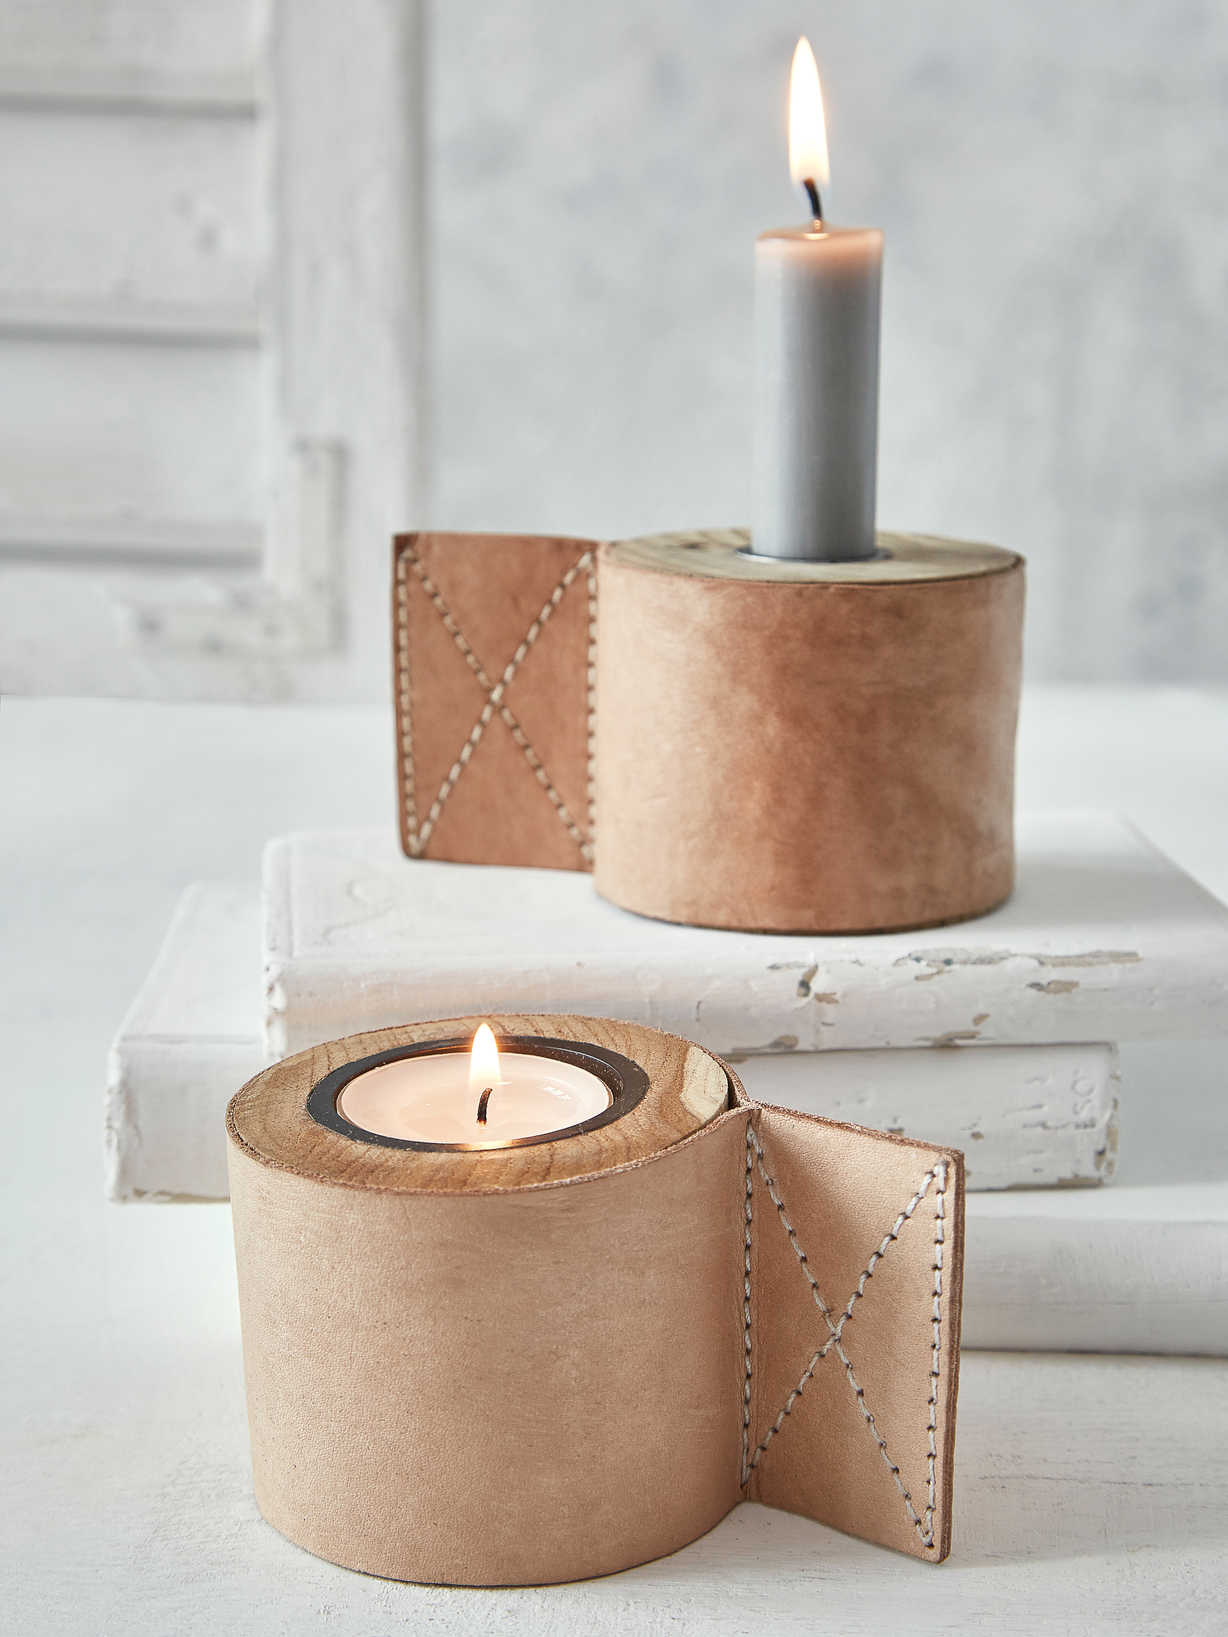 Nordic House Teak and Leather Candle Holder